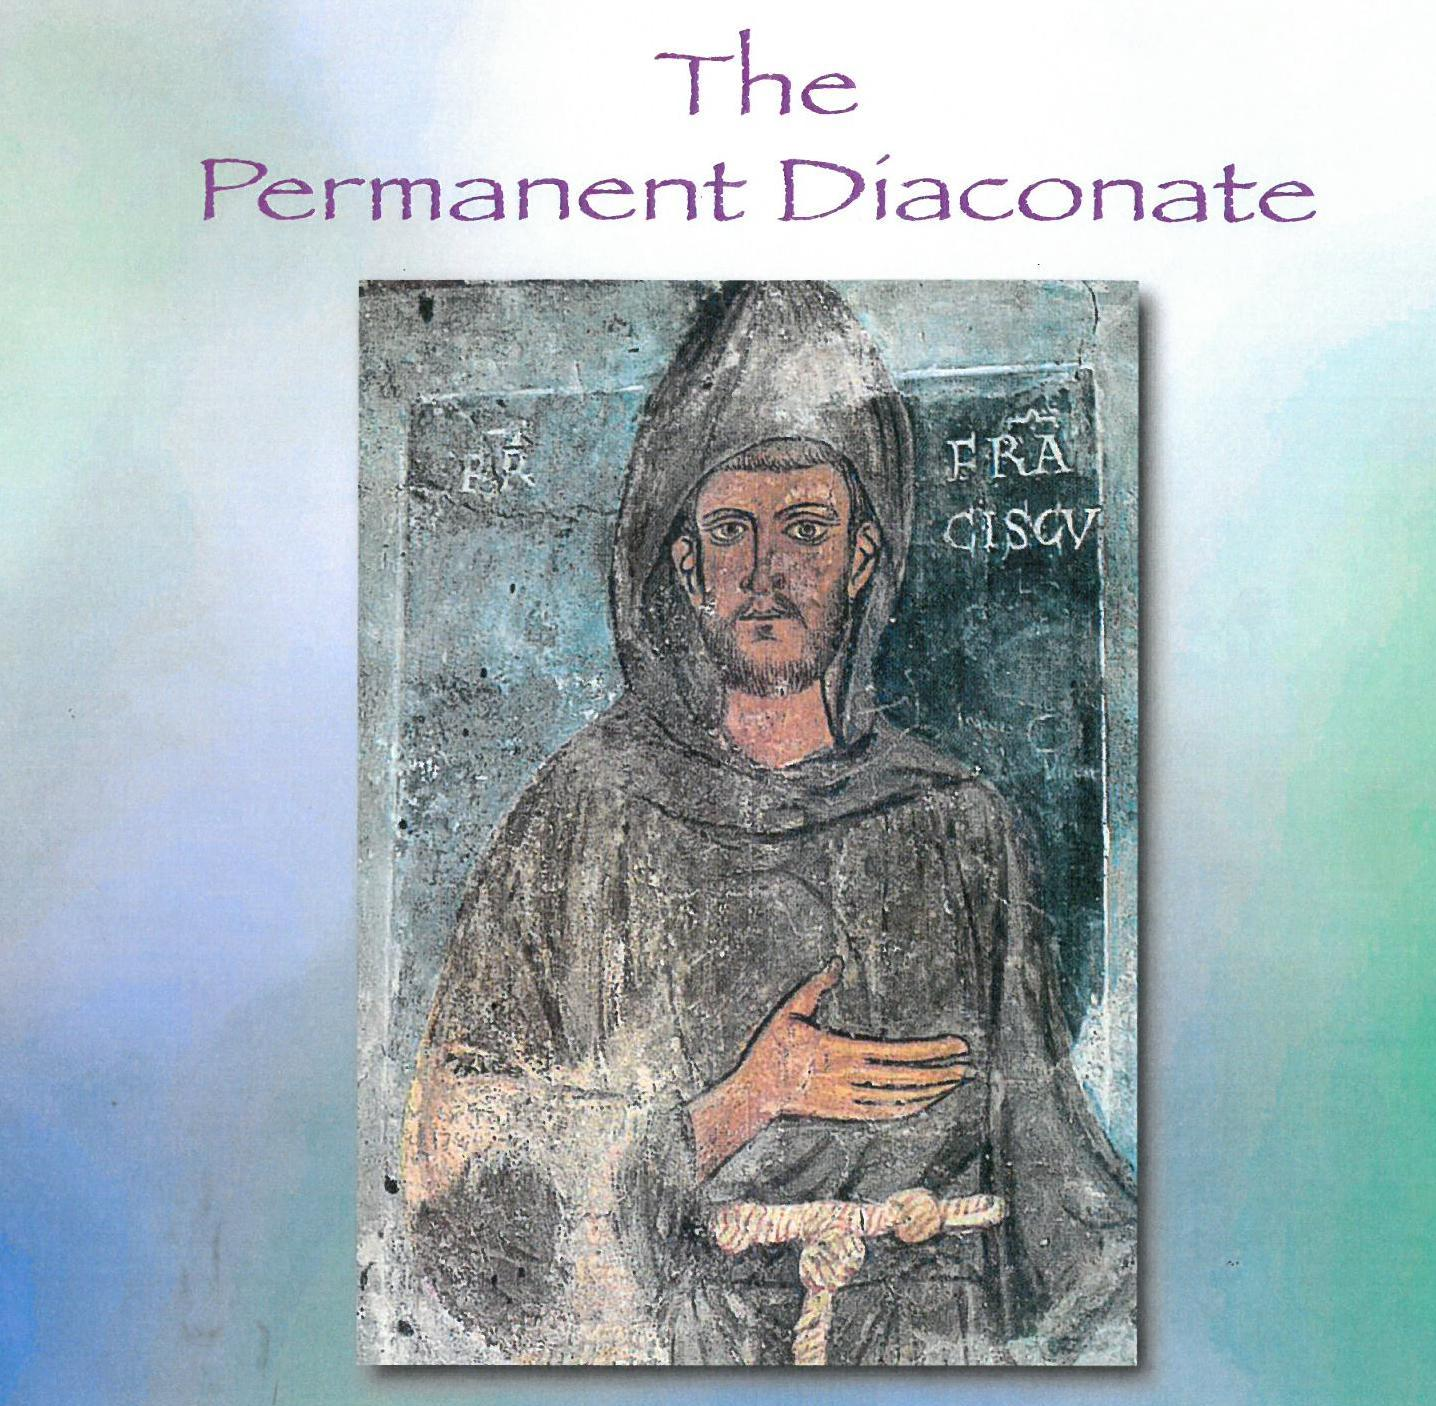 Copy of Pastoral Letter from Bishop Kieran O'Reilly on the Permanent Diaconate